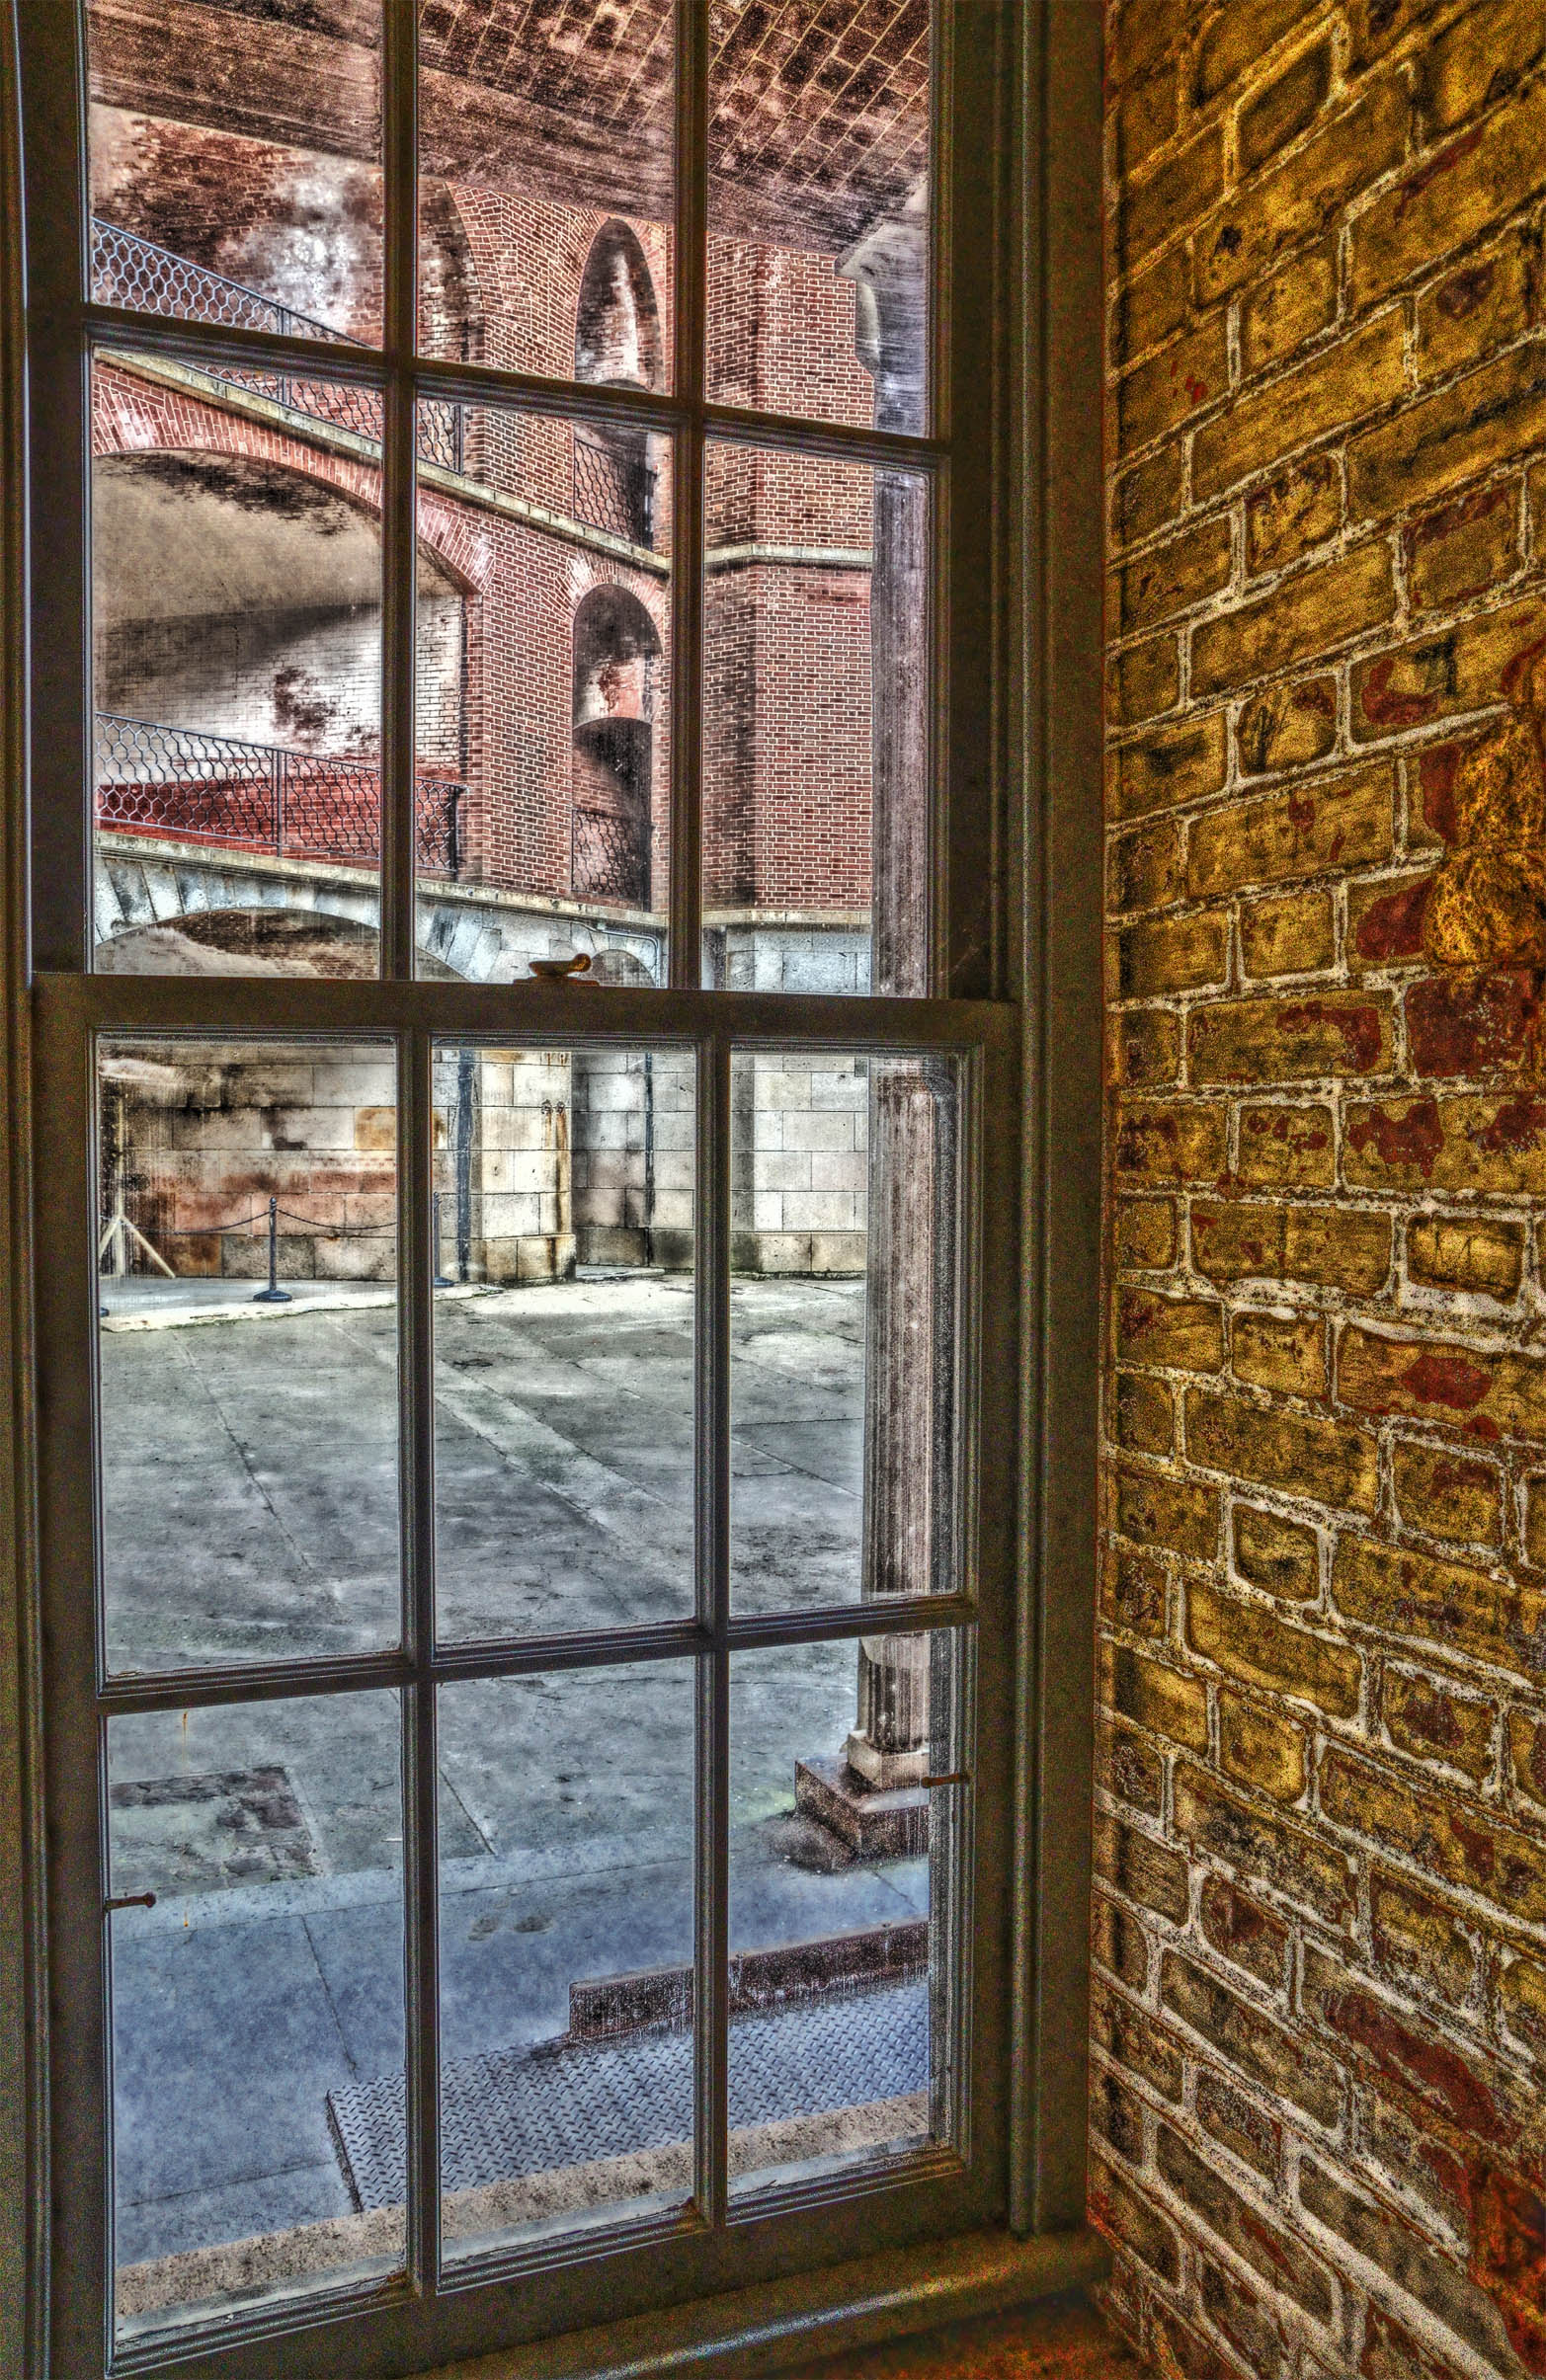 Courtyard Window by PaulWeber